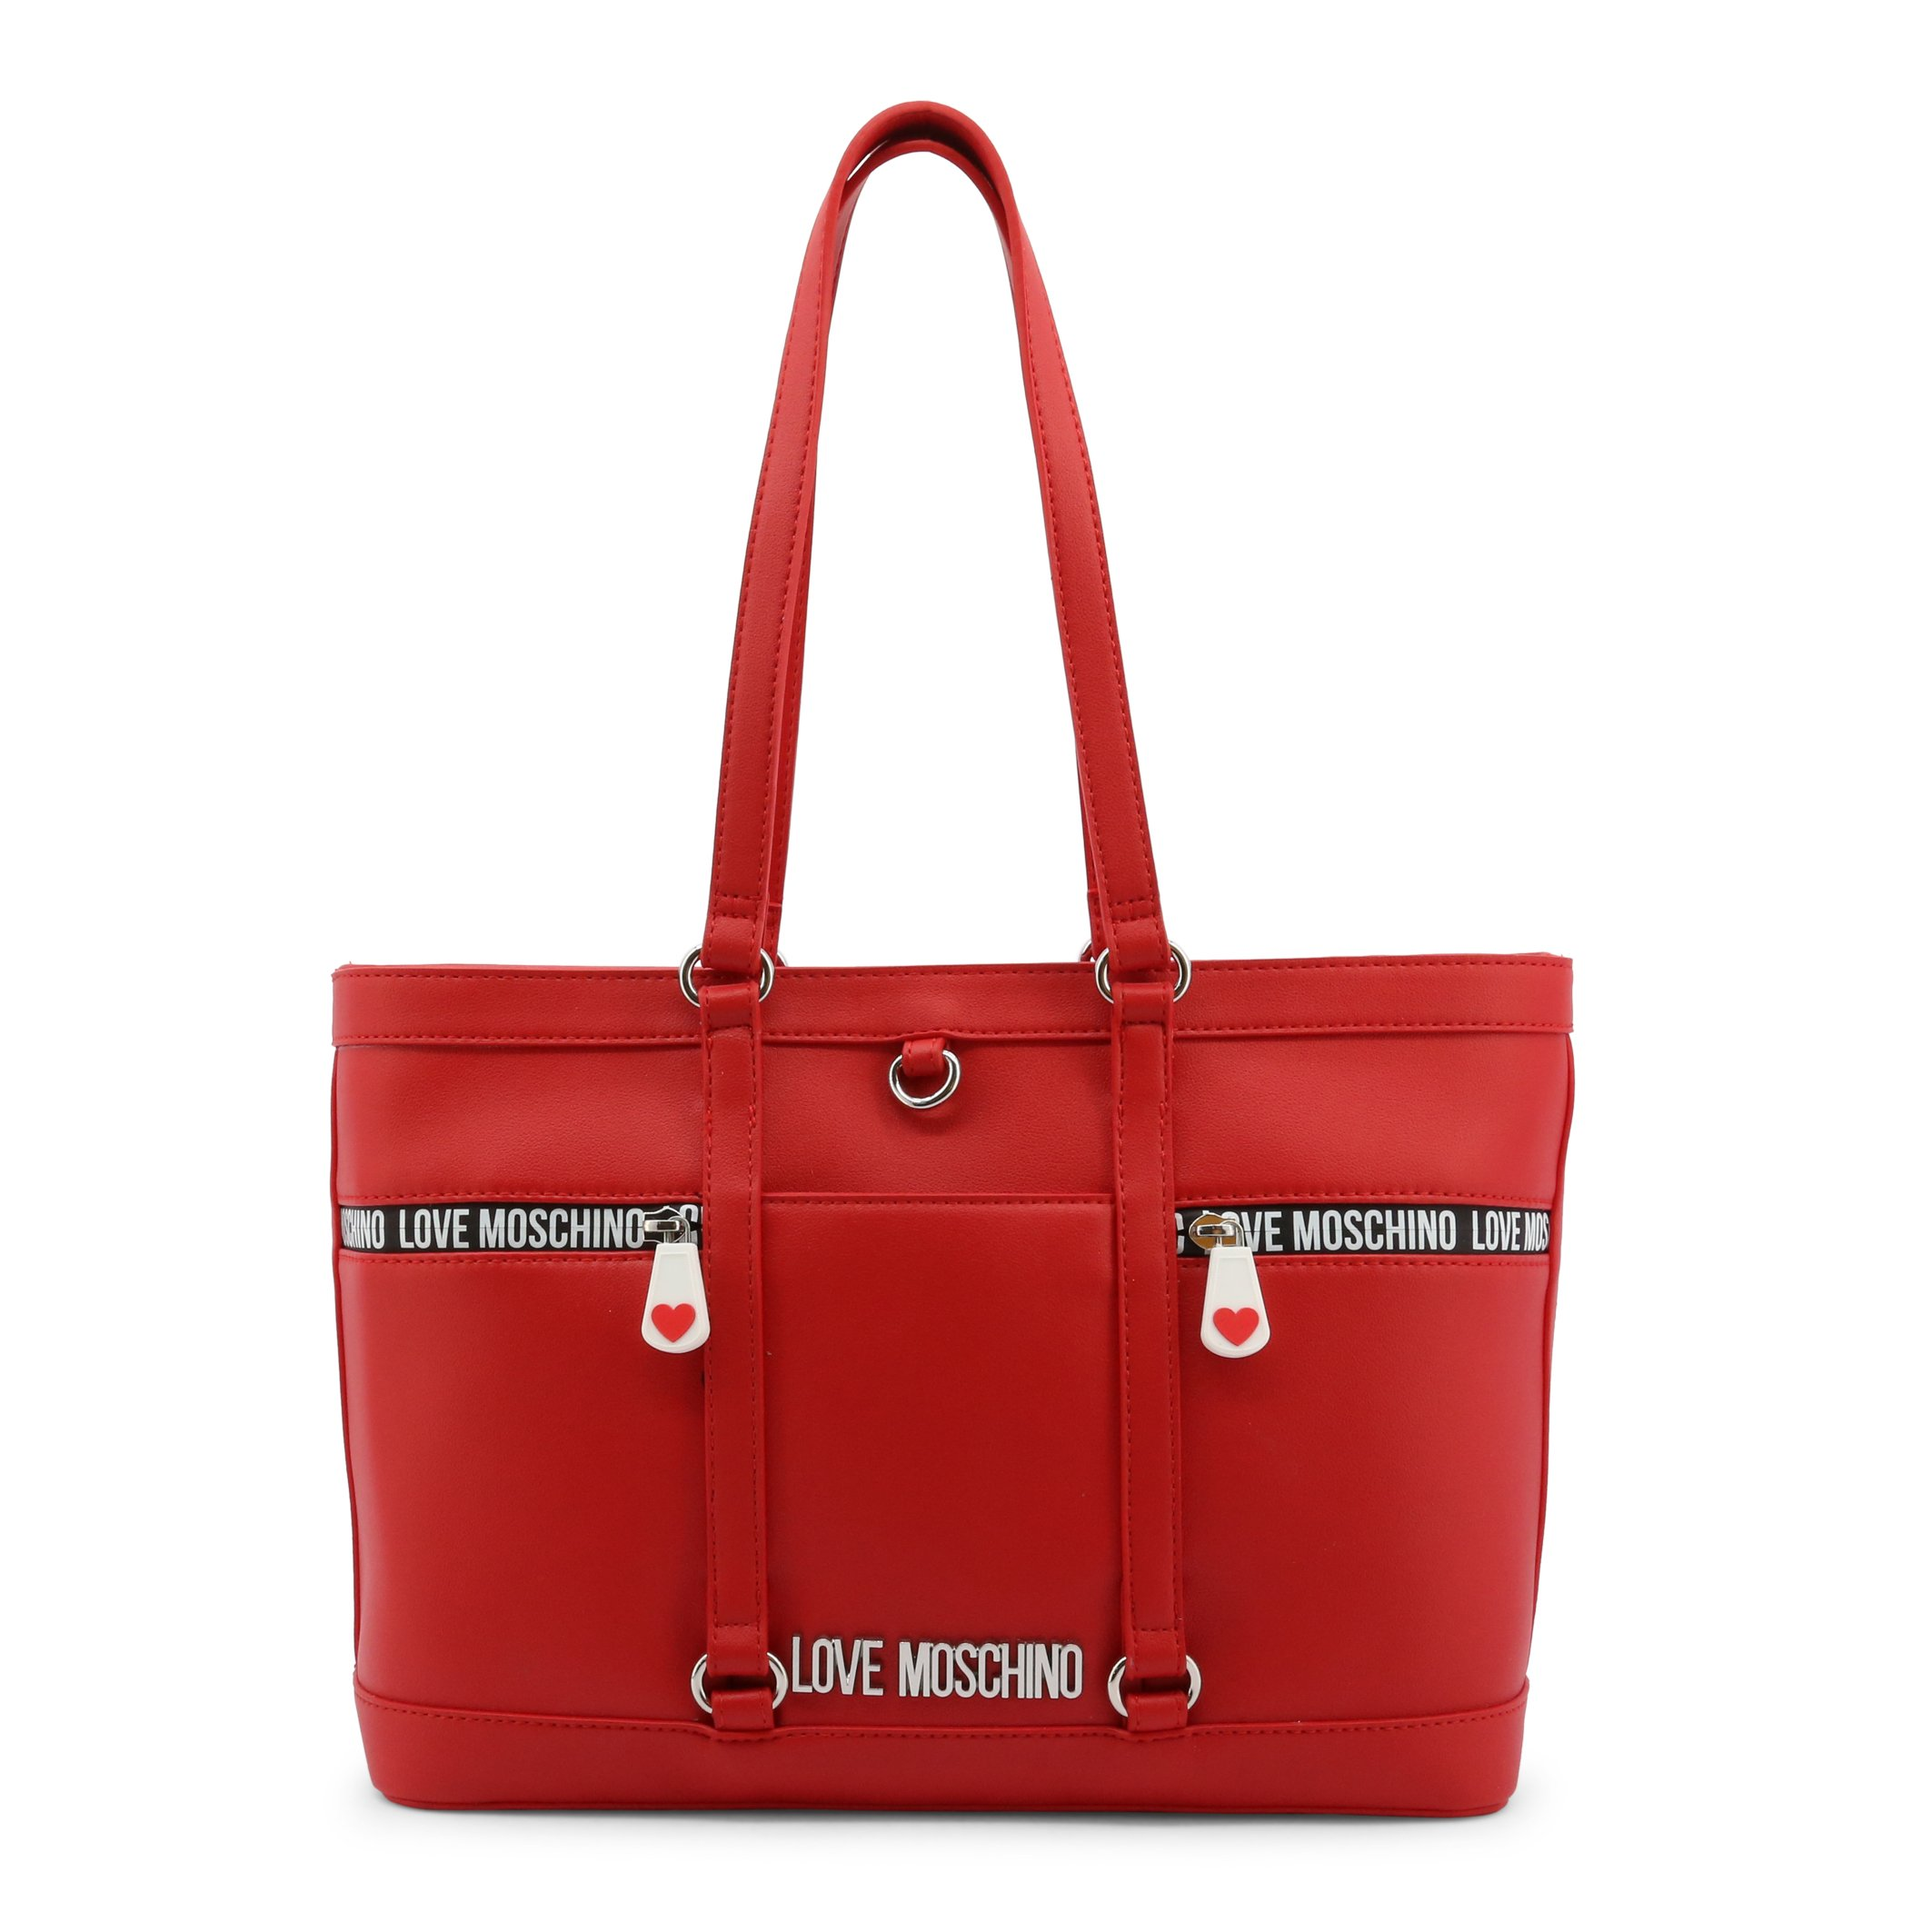 Love Moschino Women's Shopping Bag Various Colours JC4148PP1DLD0 - red NOSIZE